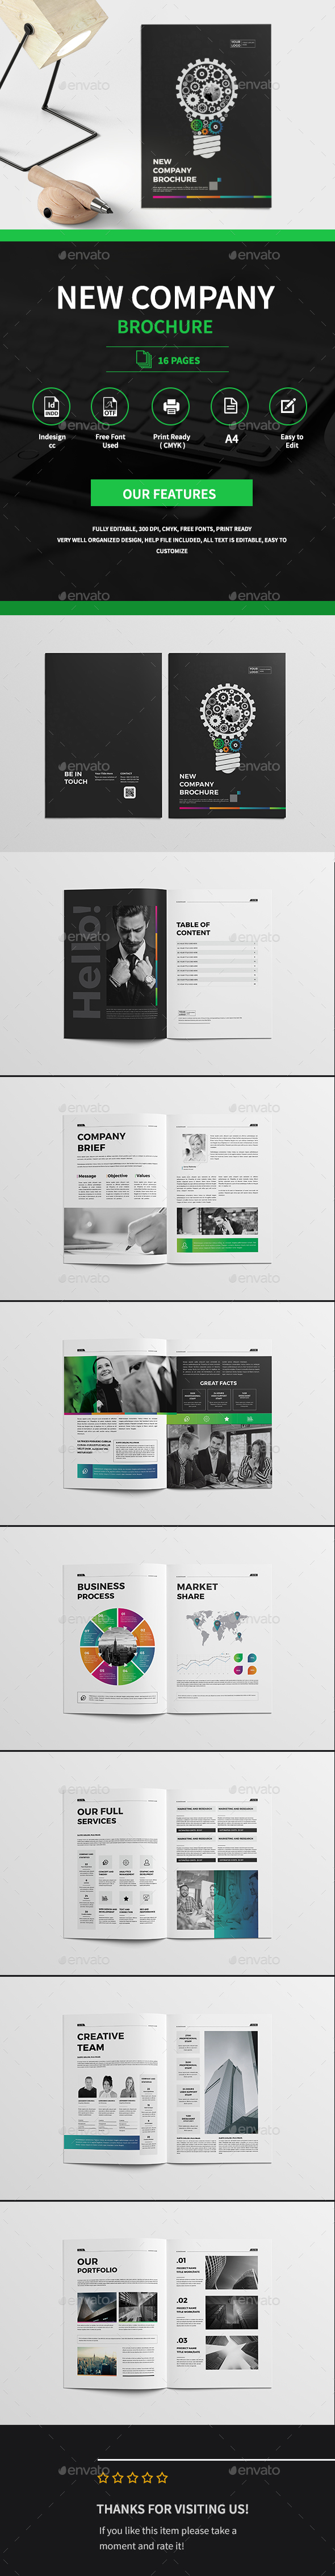 Business Innovation Brochure - Corporate Brochures